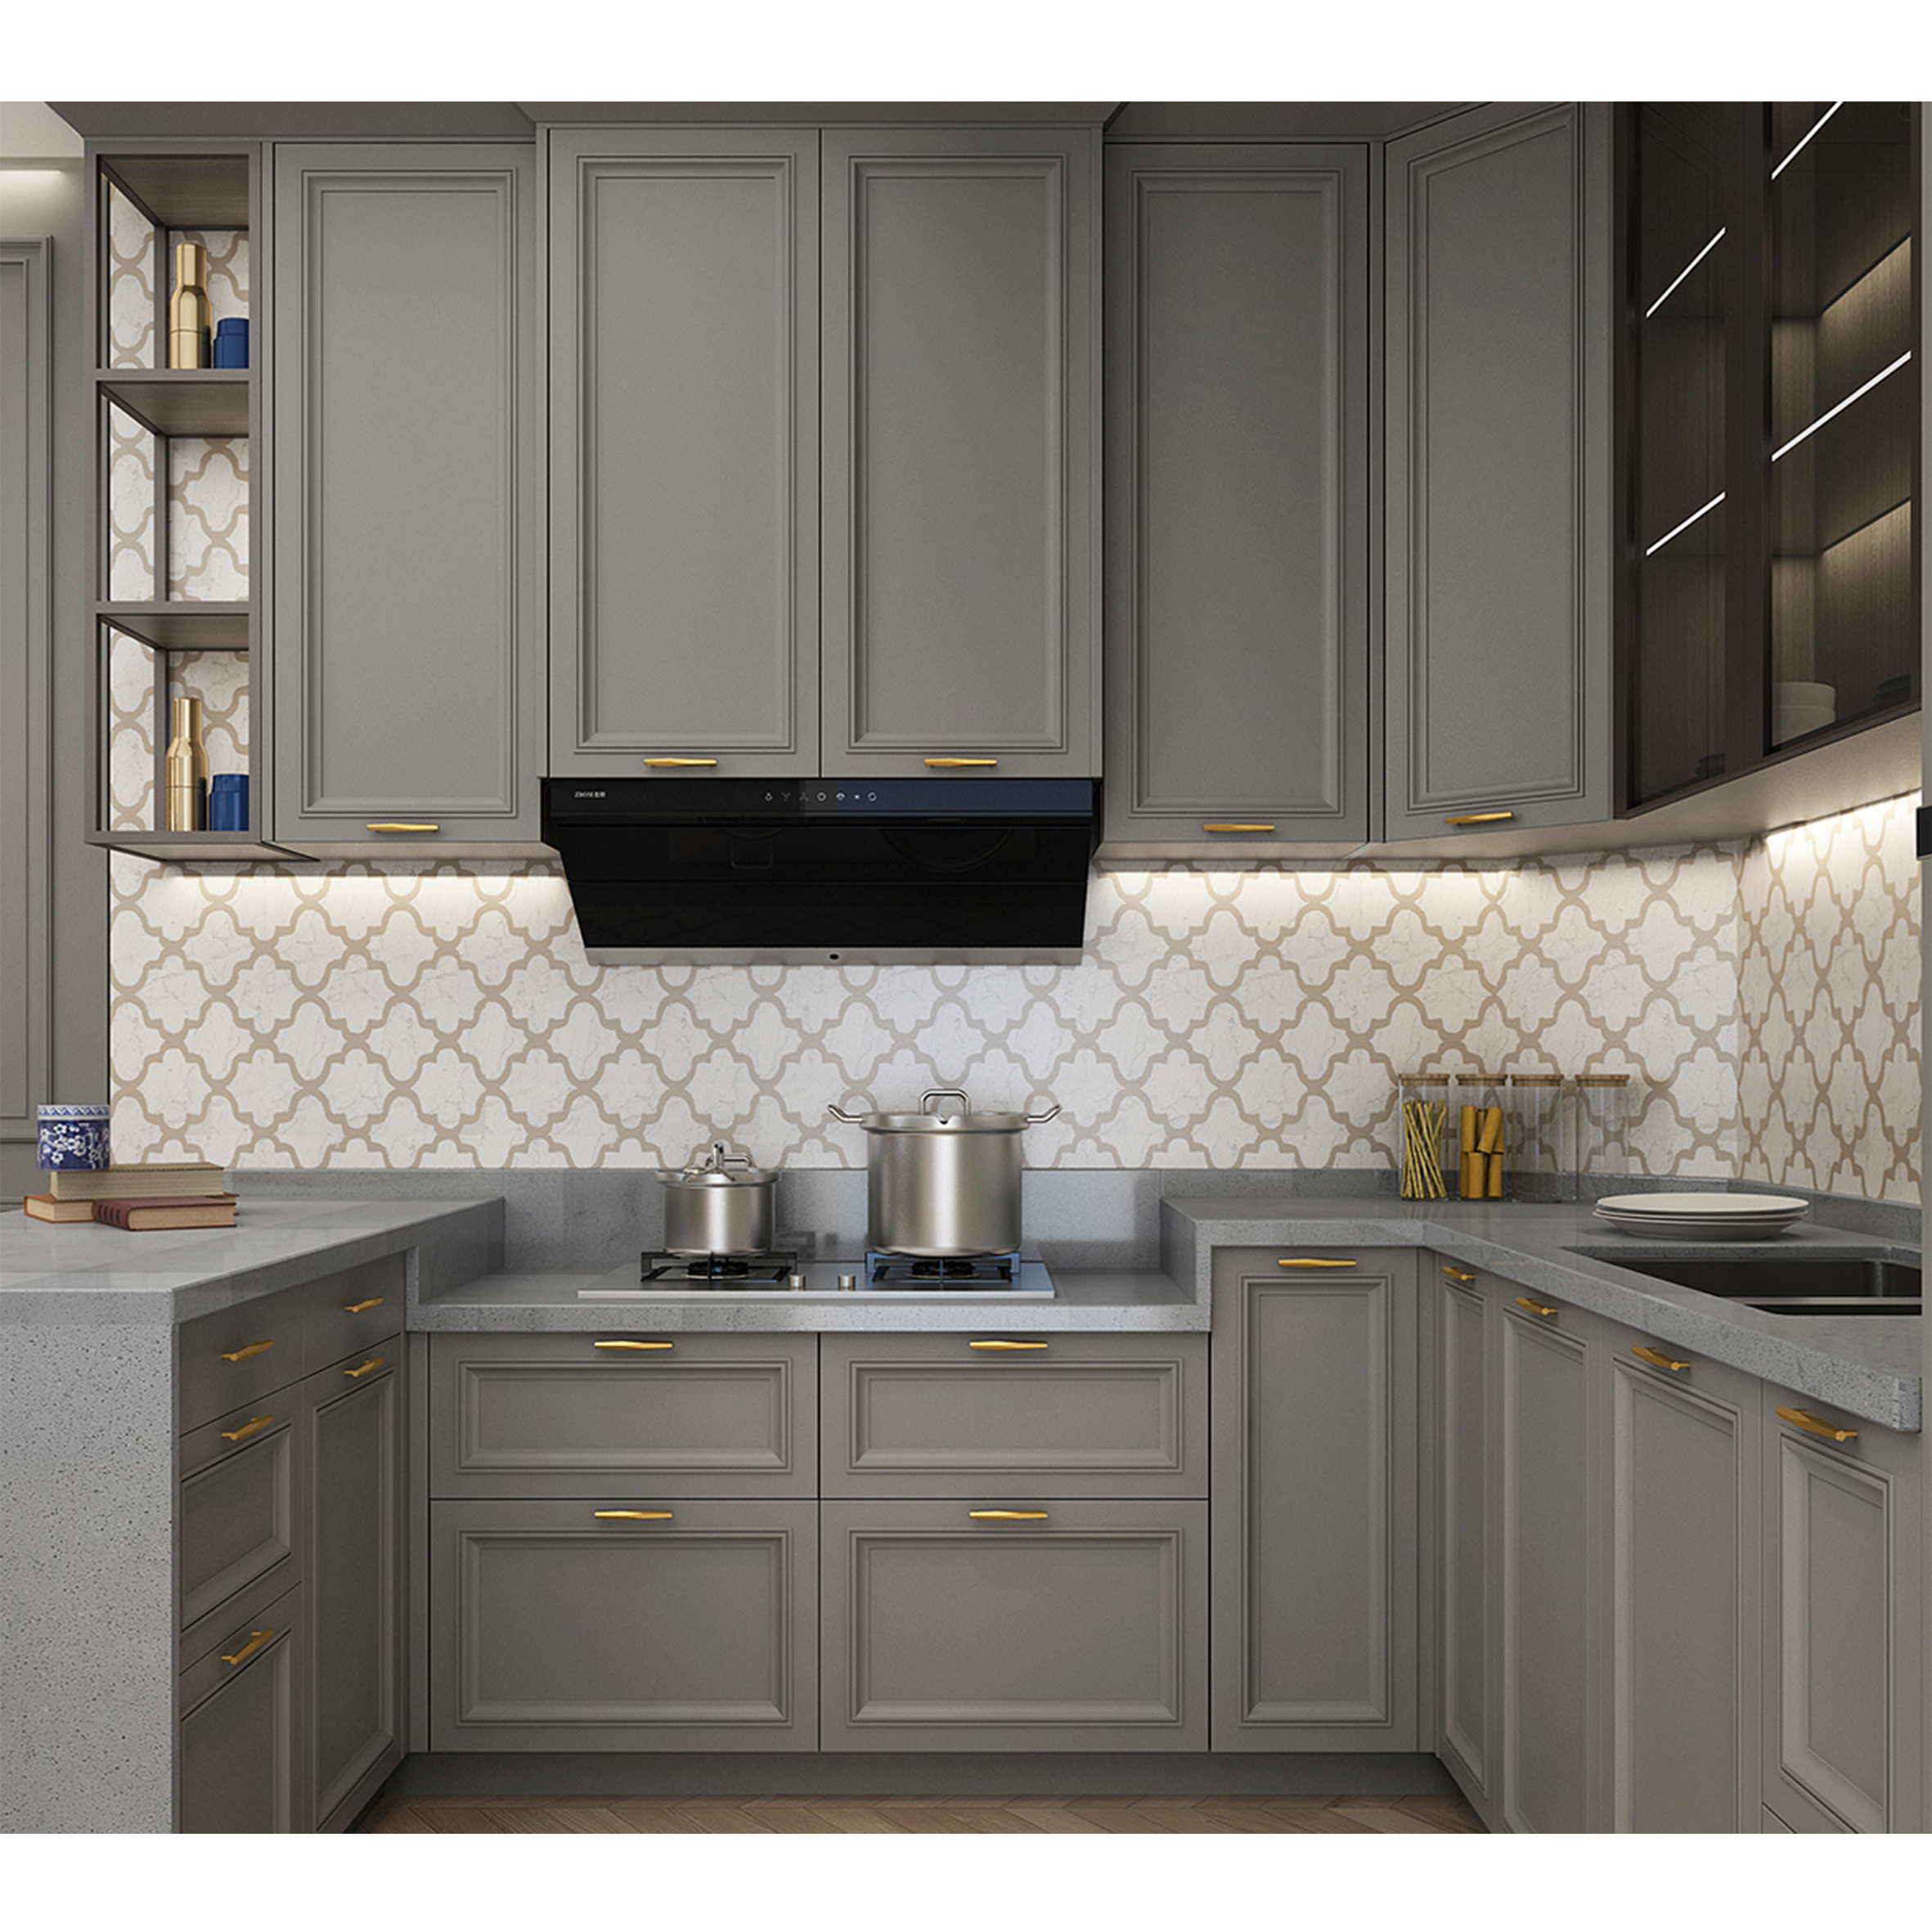 Foshan Lacquer Kitchen Cabinets Wholesale Solid Color High Gloss Lacquer U Shaped Kitchen Cabinet Buy Indian Kitchen Design Design Kitchen Set Whole Kitchen Cabinet Set Product On Alibaba Com